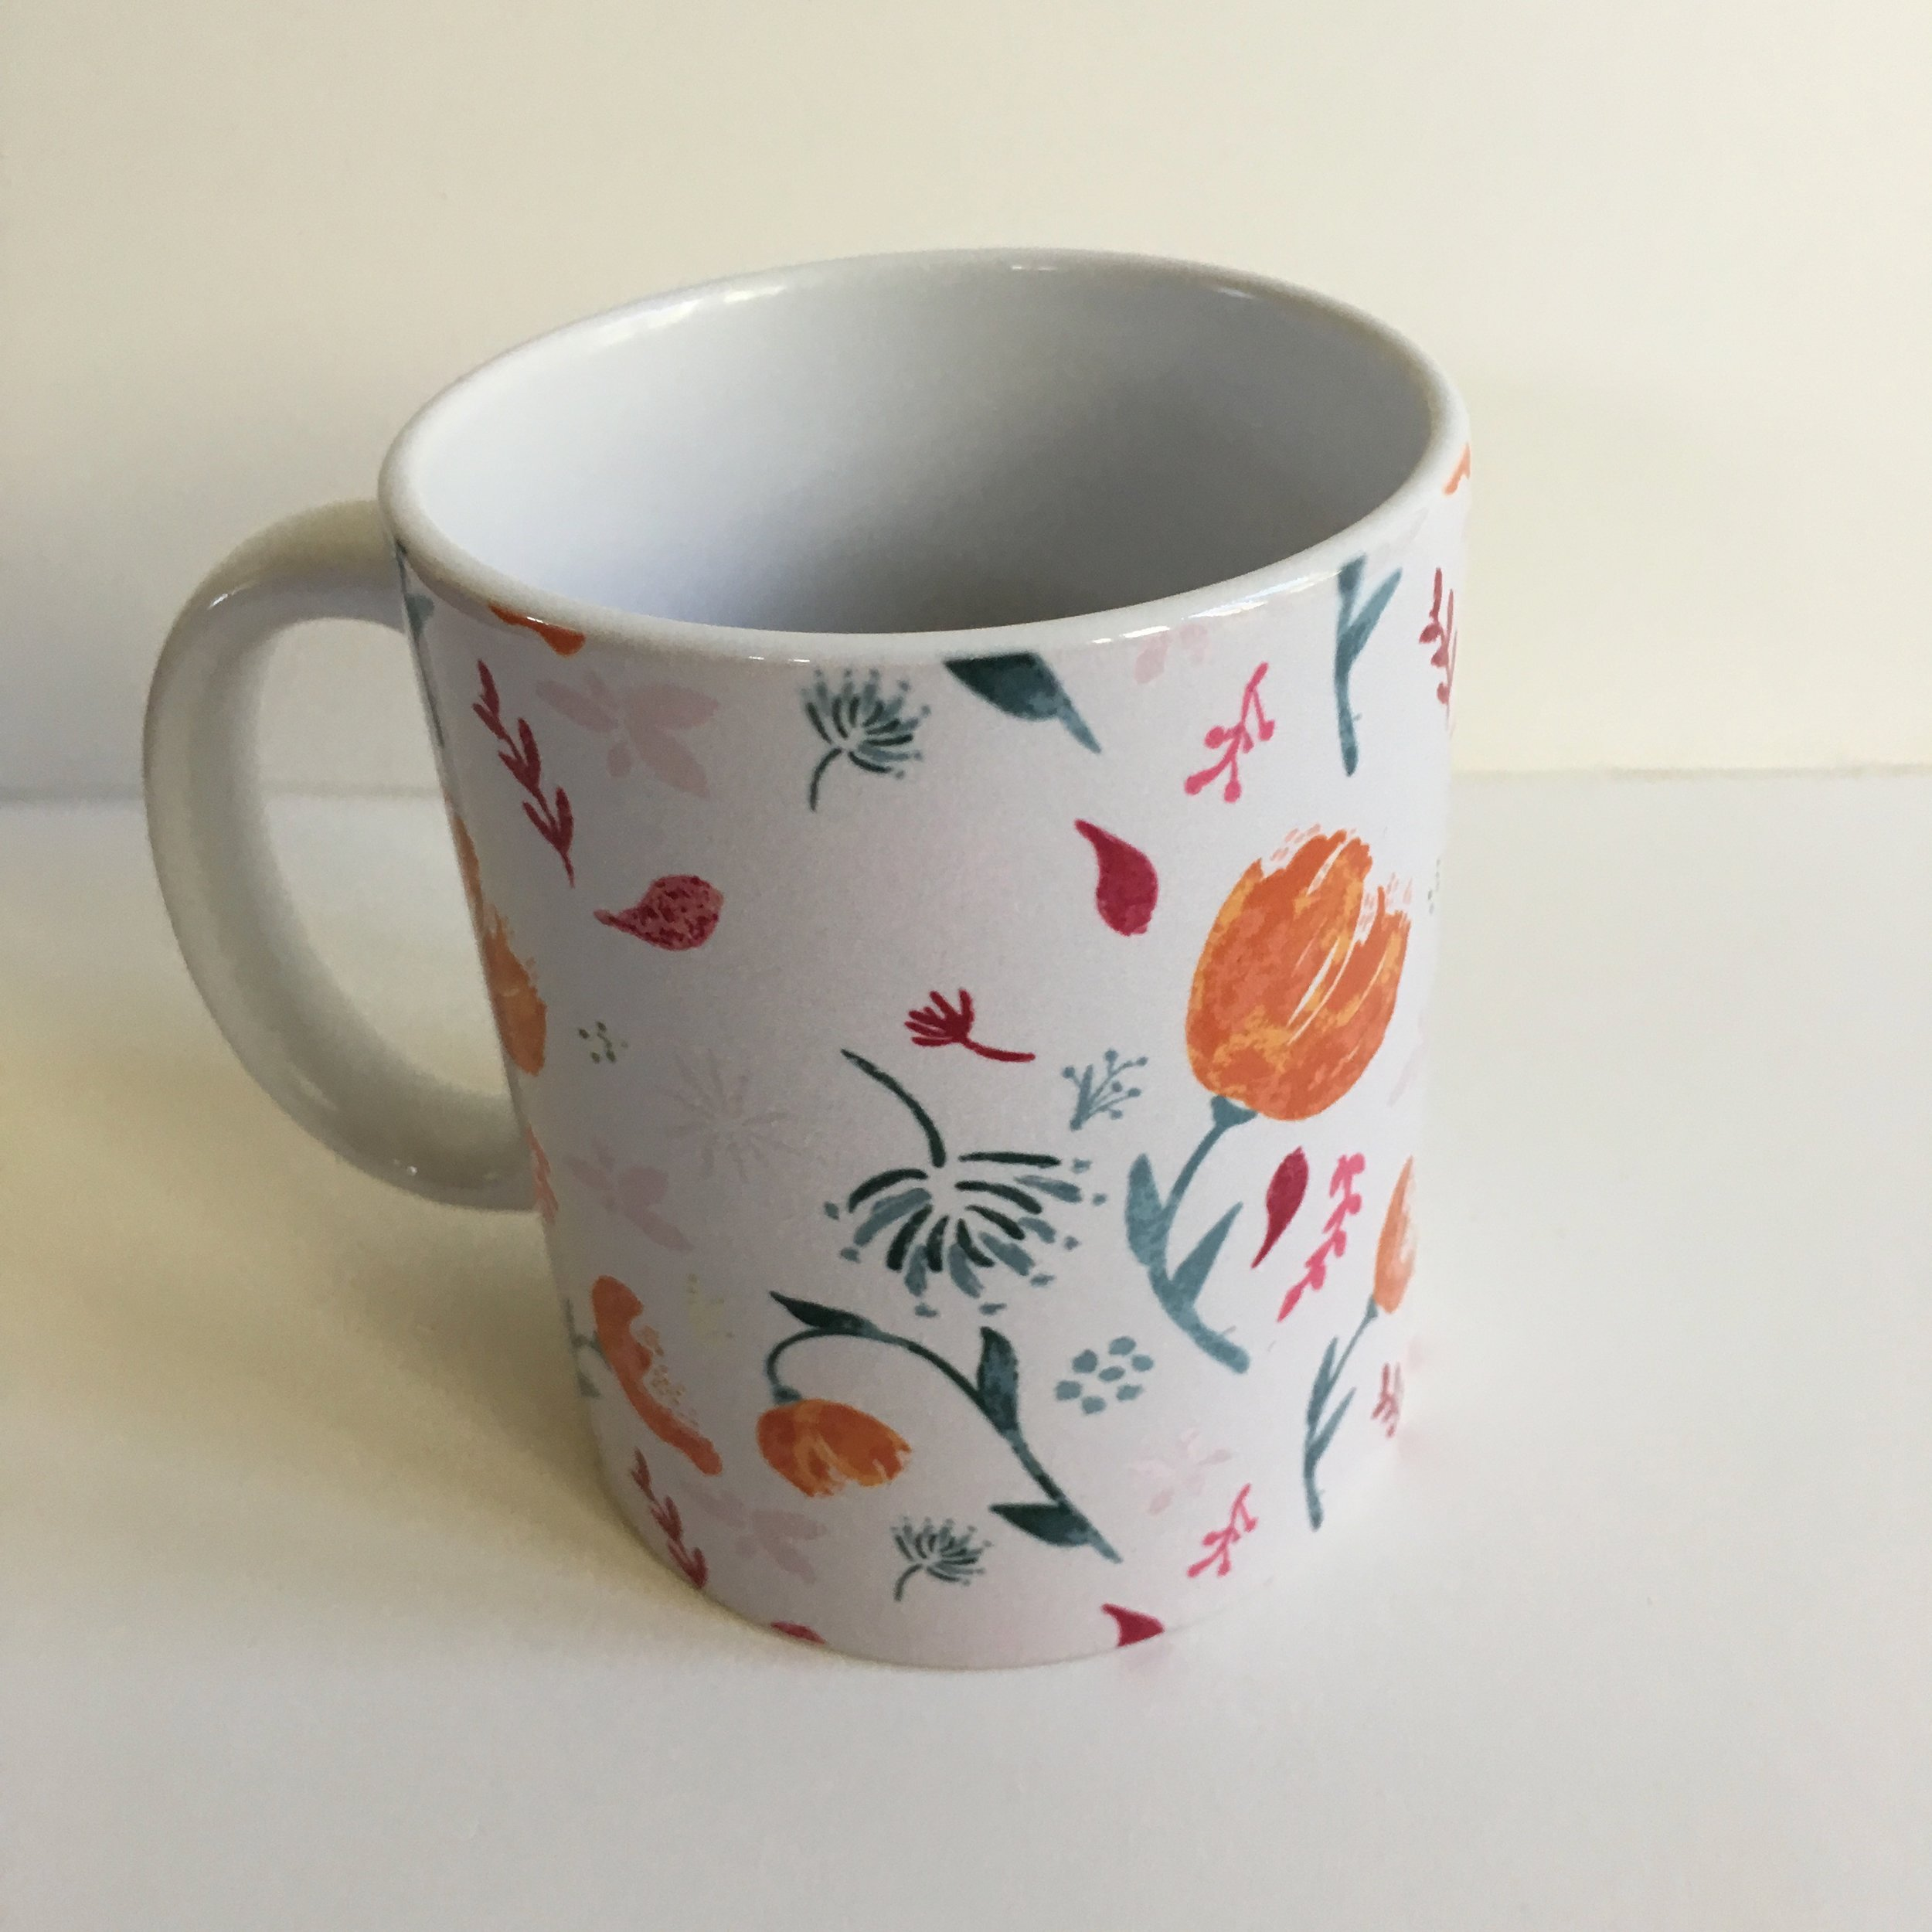 11 oz mug in watercolor floral pattern